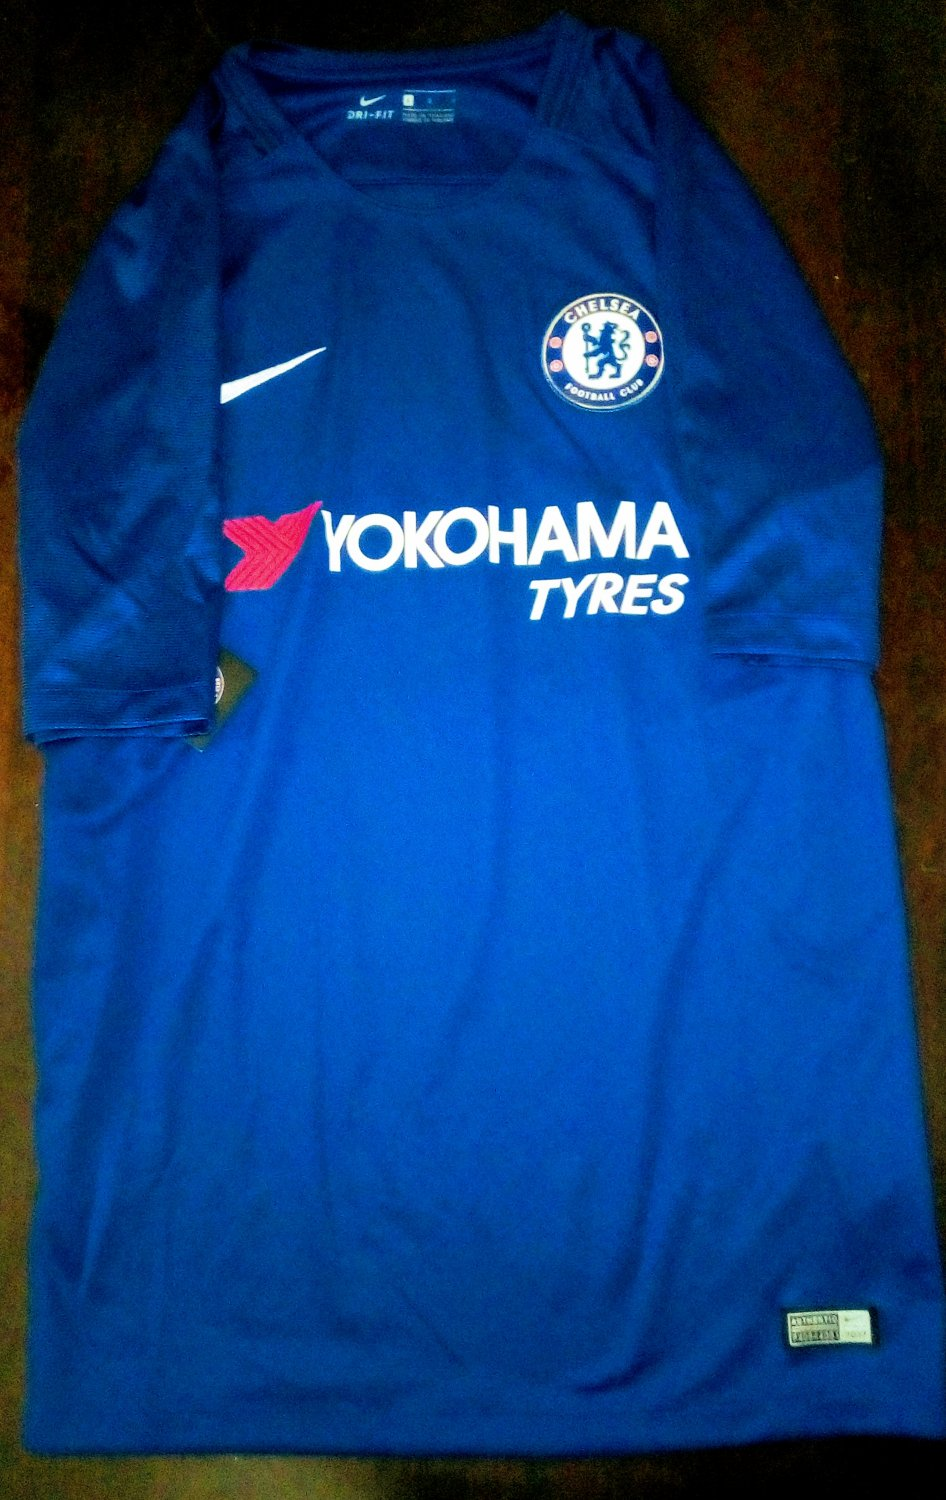 watch 7d986 66cae Chelsea Home football shirt 2017 - 2018. Sponsored by ...